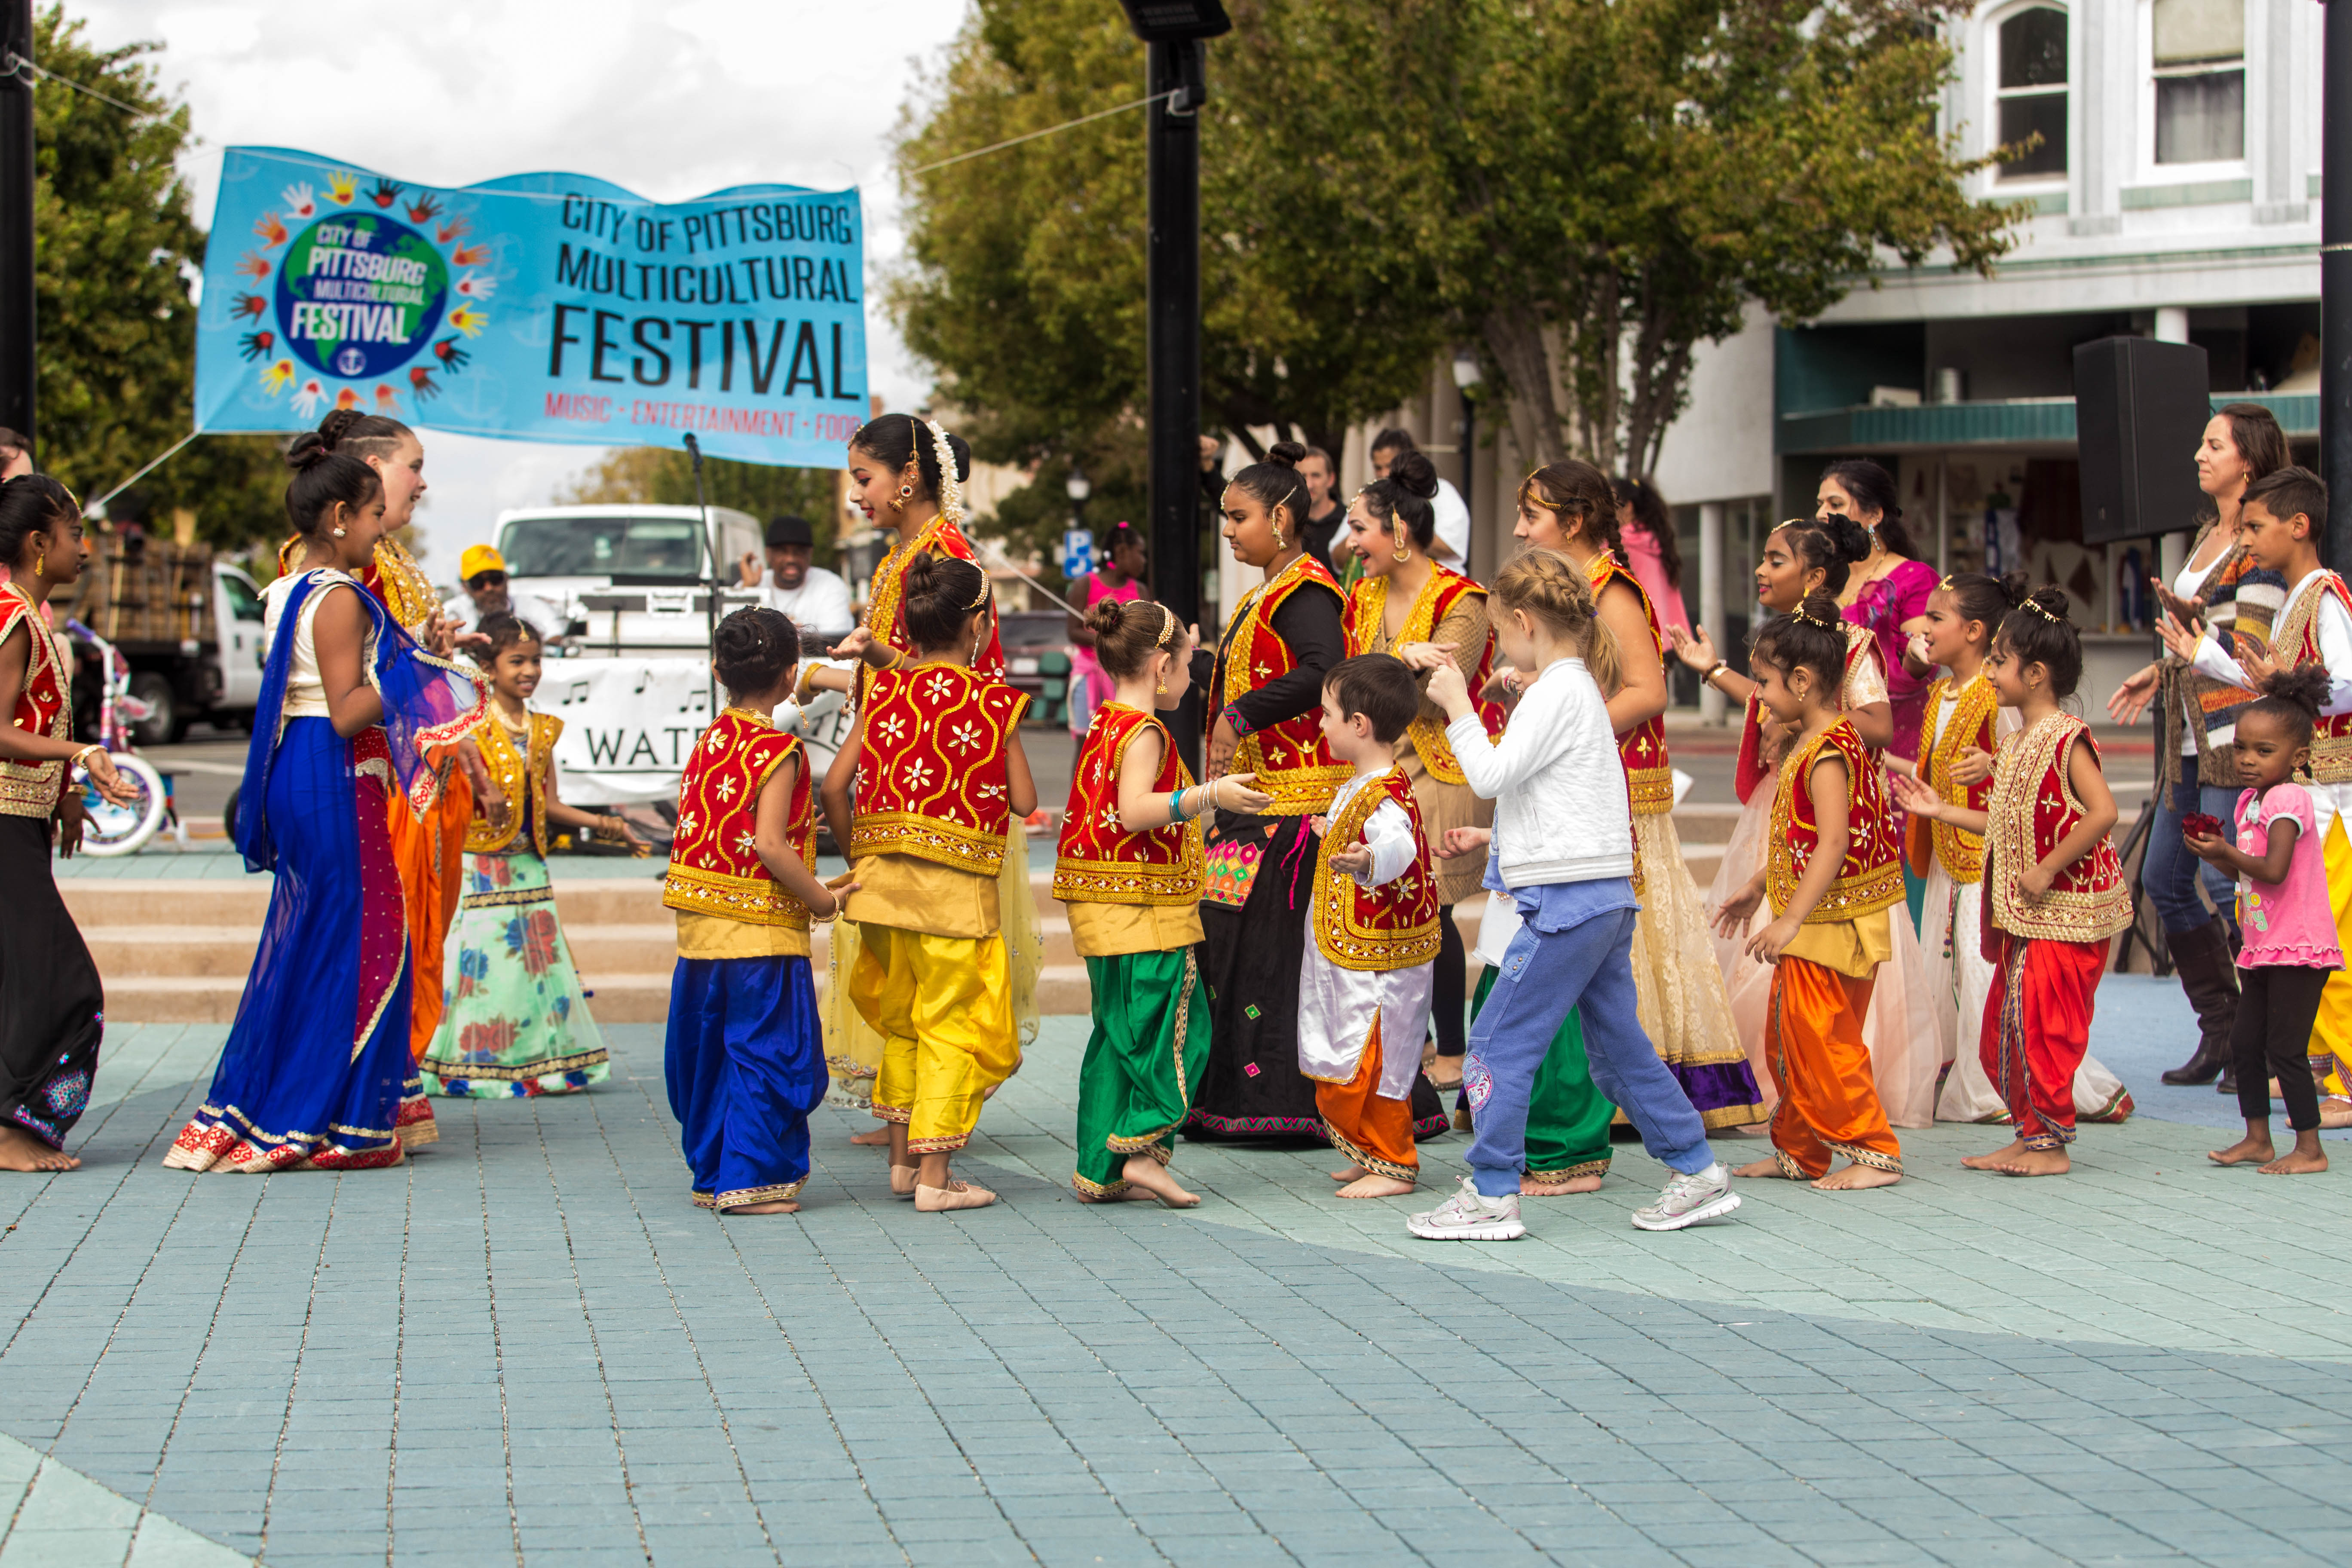 CITY_PITTSBURG_MULTICULTURAL_OCTOBER_2016 (719)